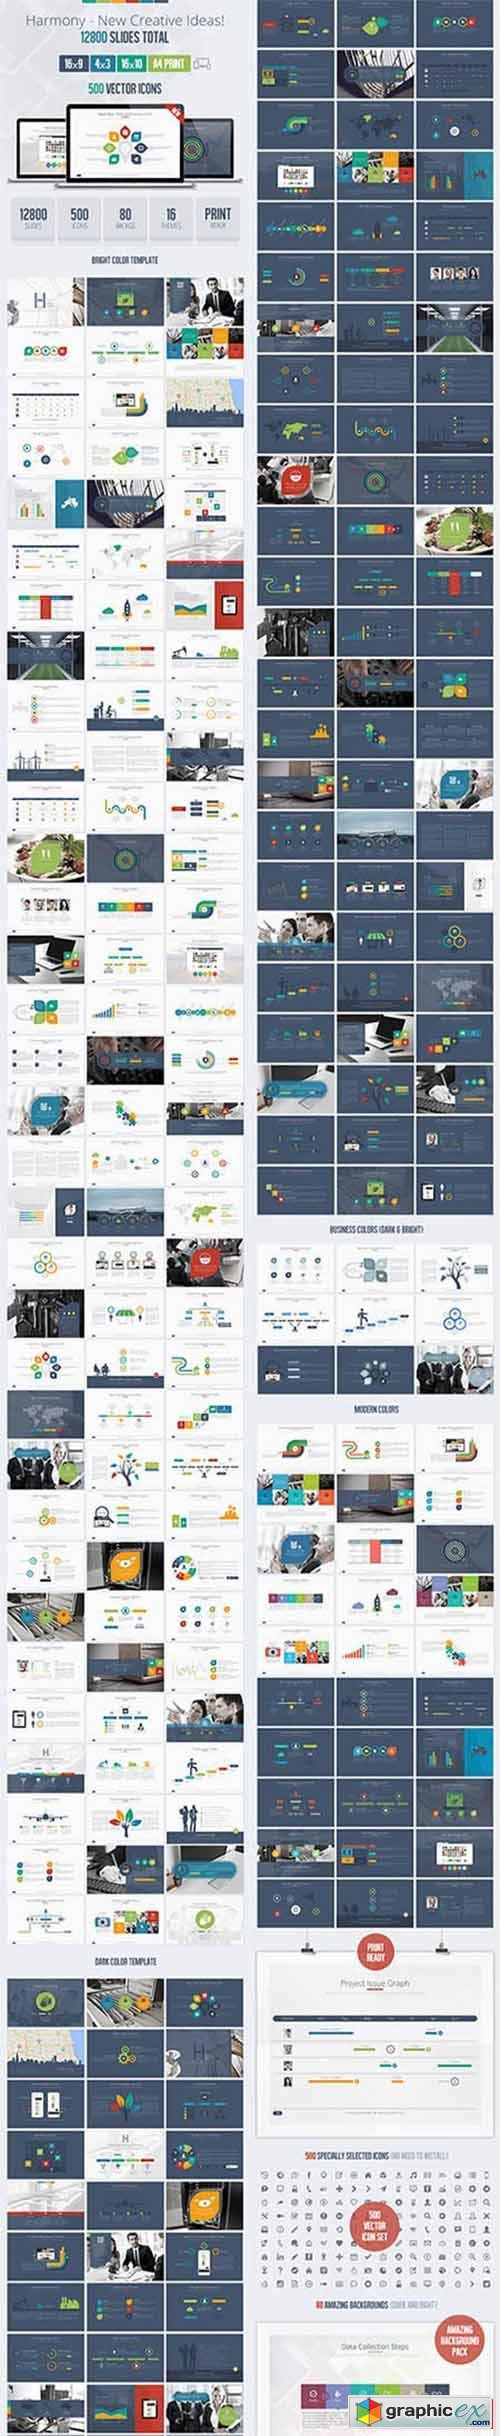 harmony usability powerpoint presentation template » free download, Presentation templates